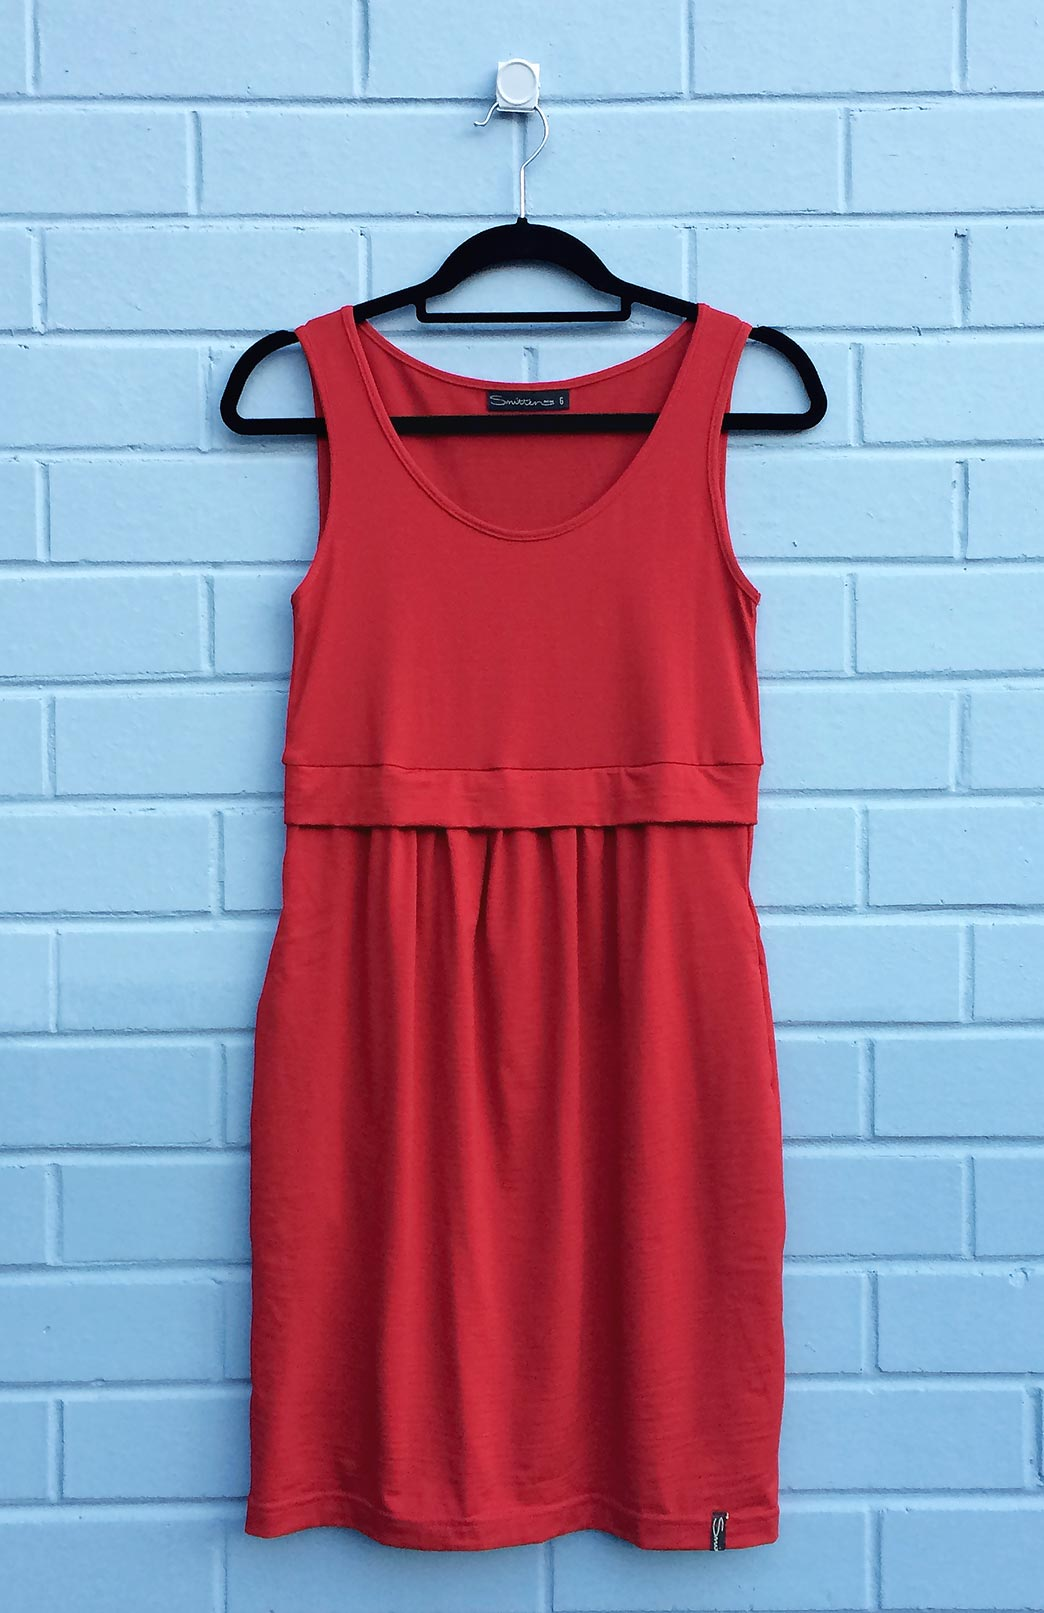 Tulip Dress - Women's Flame Red Merino Wool Fitted Tulip Dress with Side Pockets - Smitten Merino Tasmania Australia